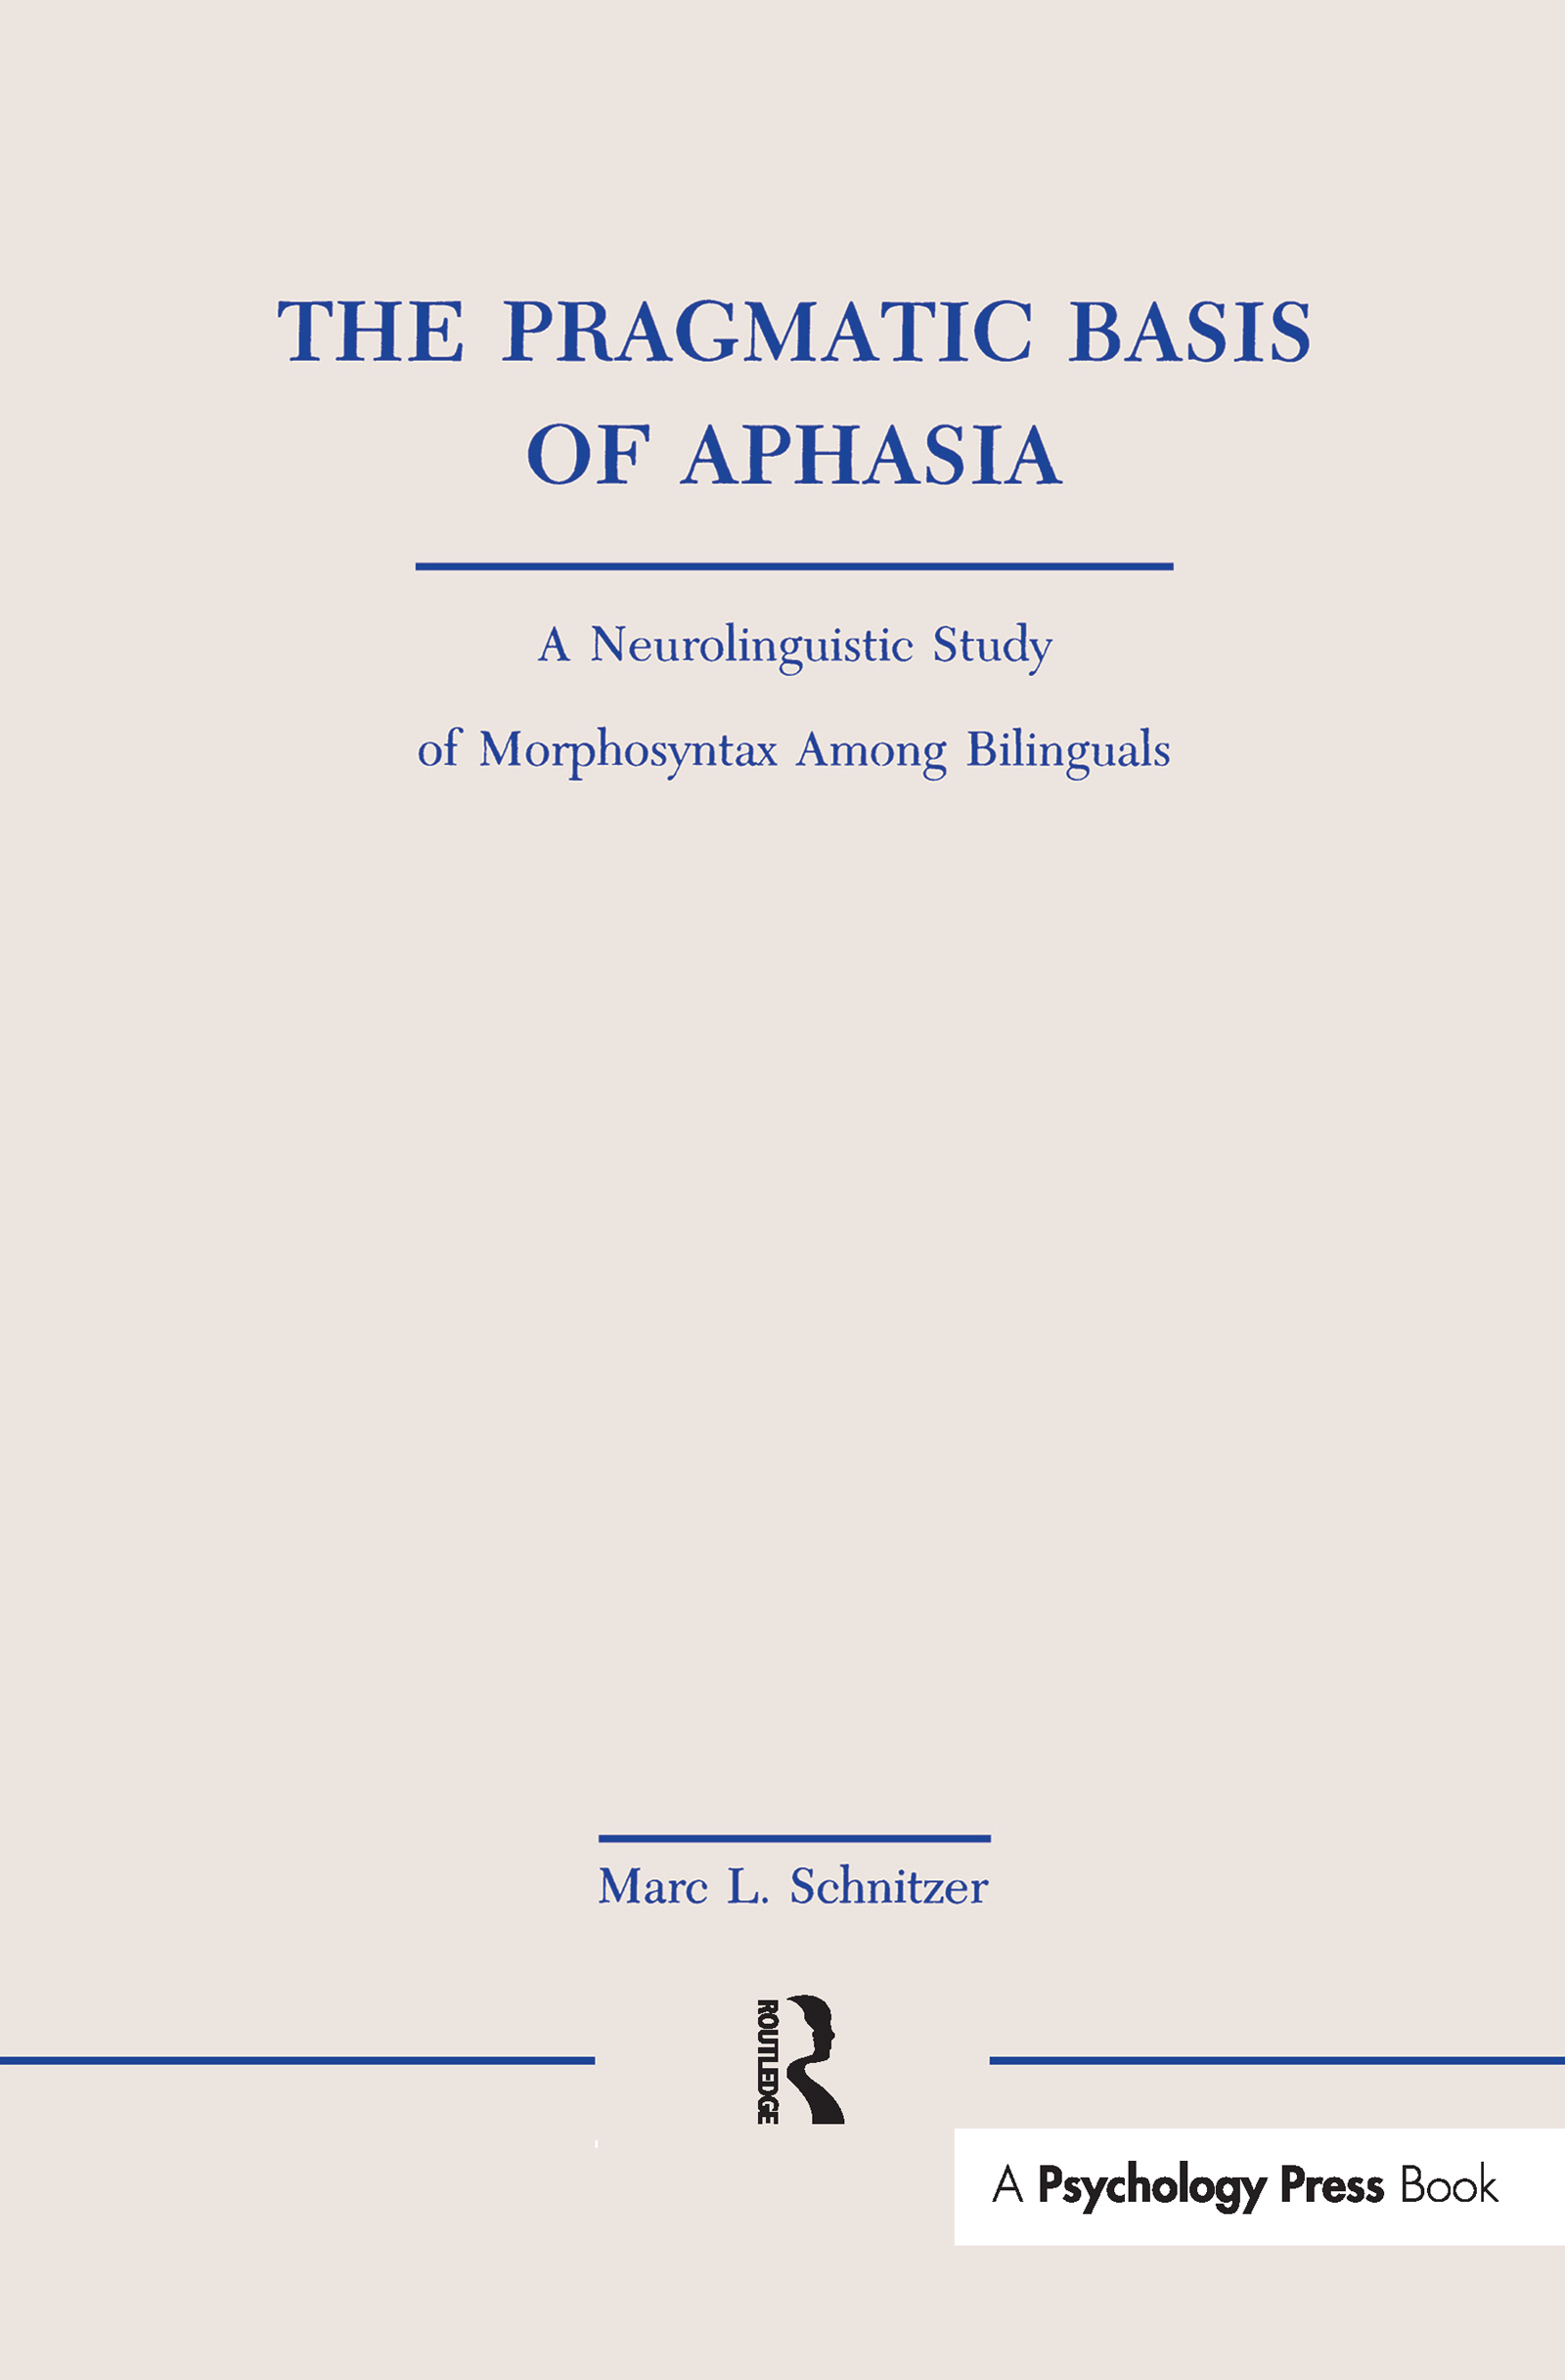 The Pragmatic Basis of Aphasia: A Neurolinguistic Study of Morphosyntax Among Bilinguals book cover